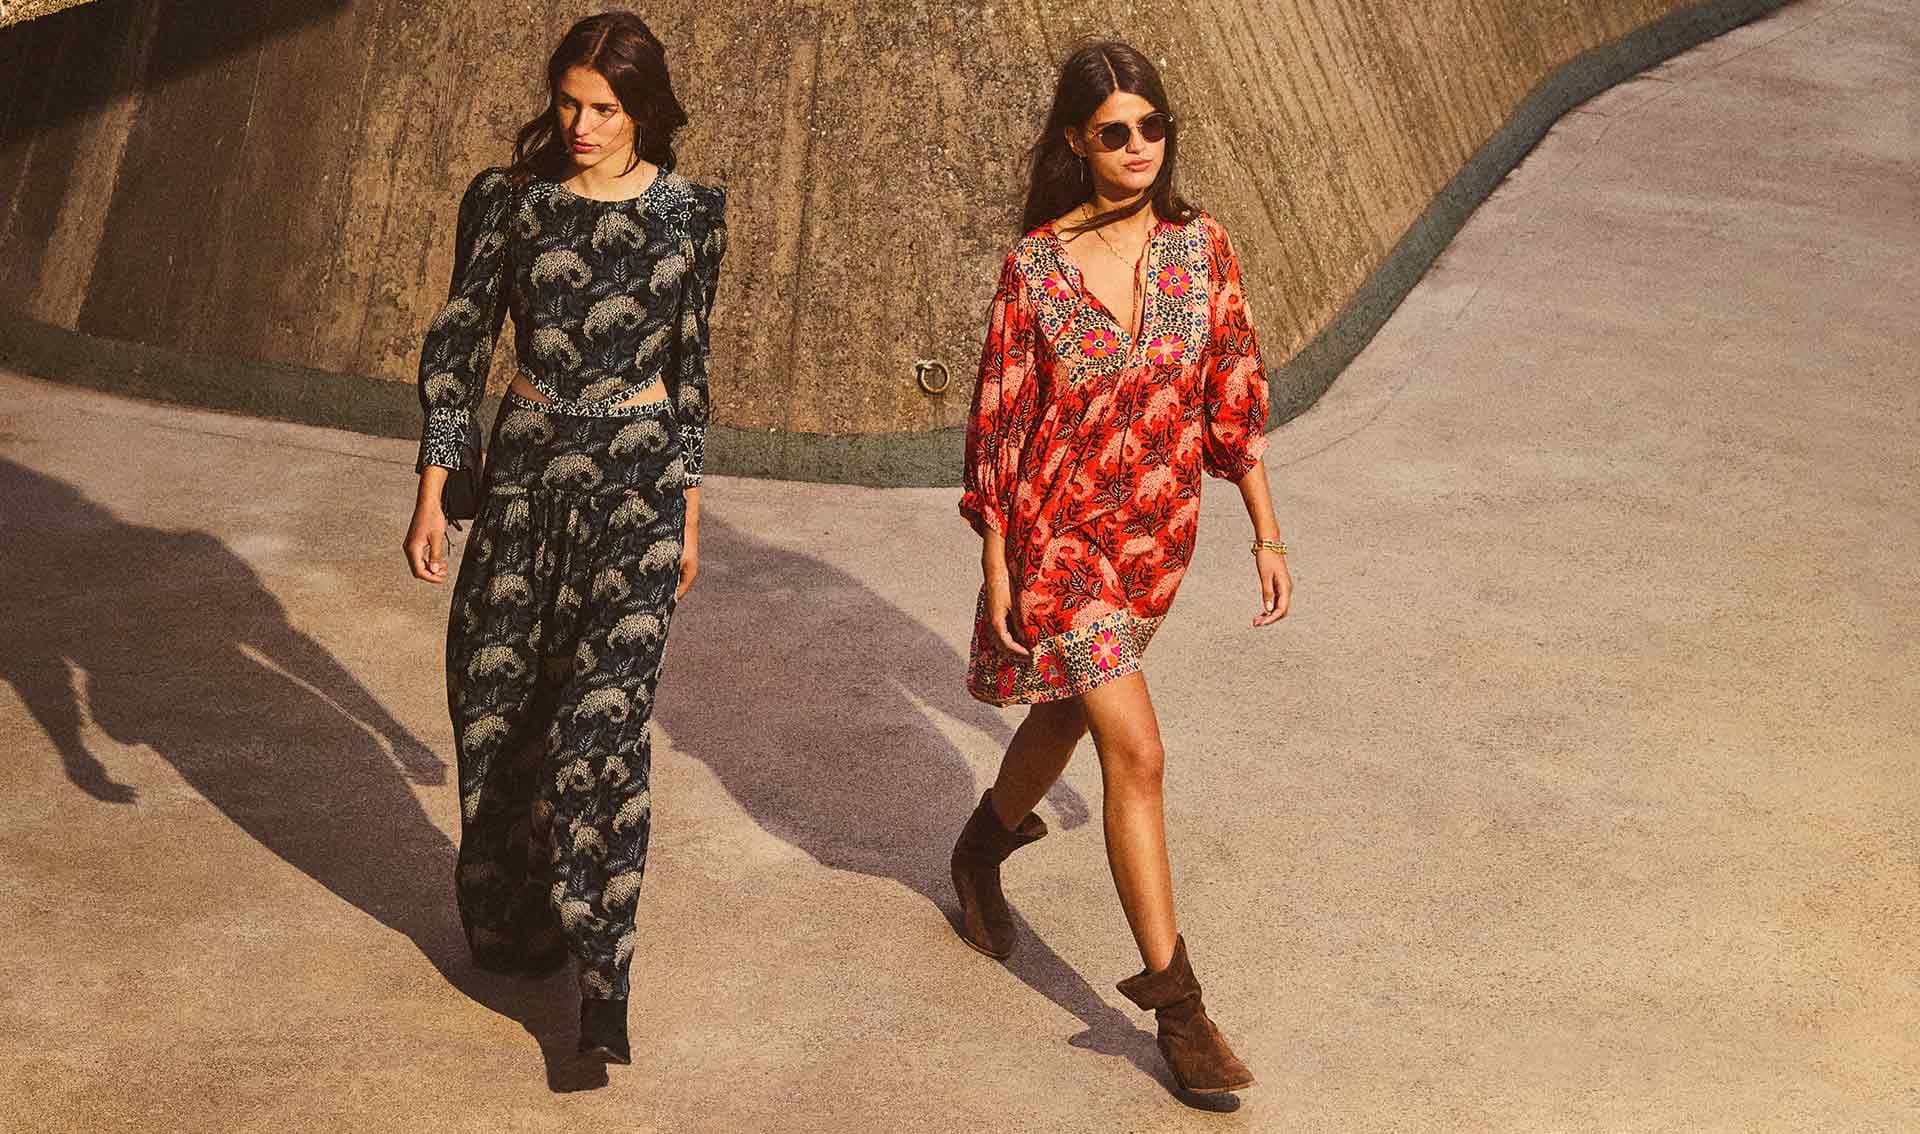 Two girls walking with printed dresses, one in a black printed dress with cutout detail and anotgher girl in a short printed orange dress.